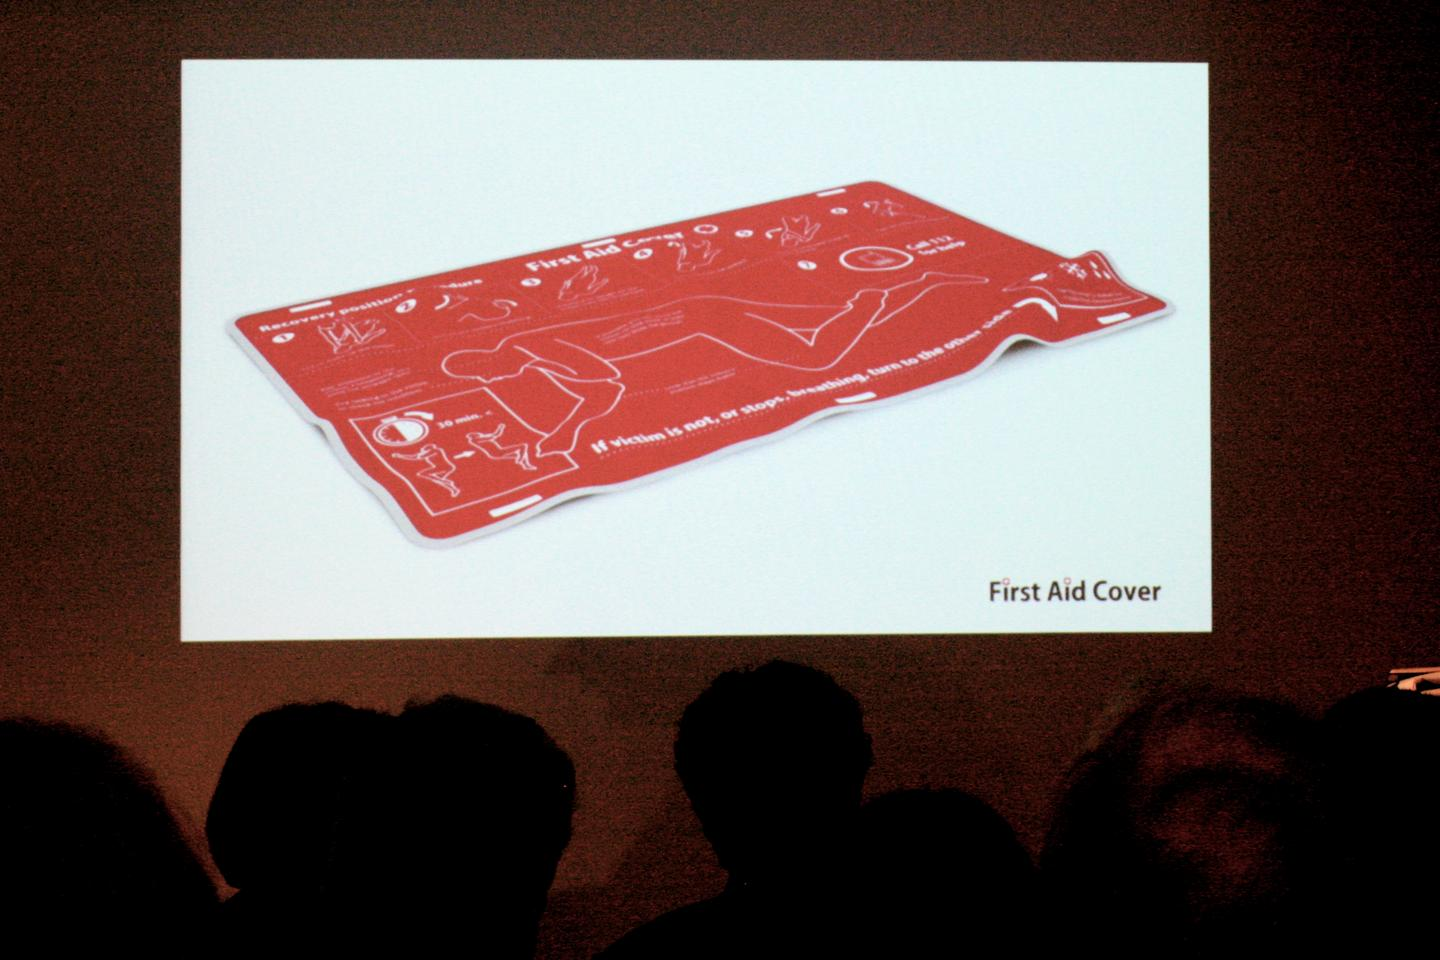 BraunPrize Runner-up: First Aid Cover by Finnish student Jussi Koskimaki